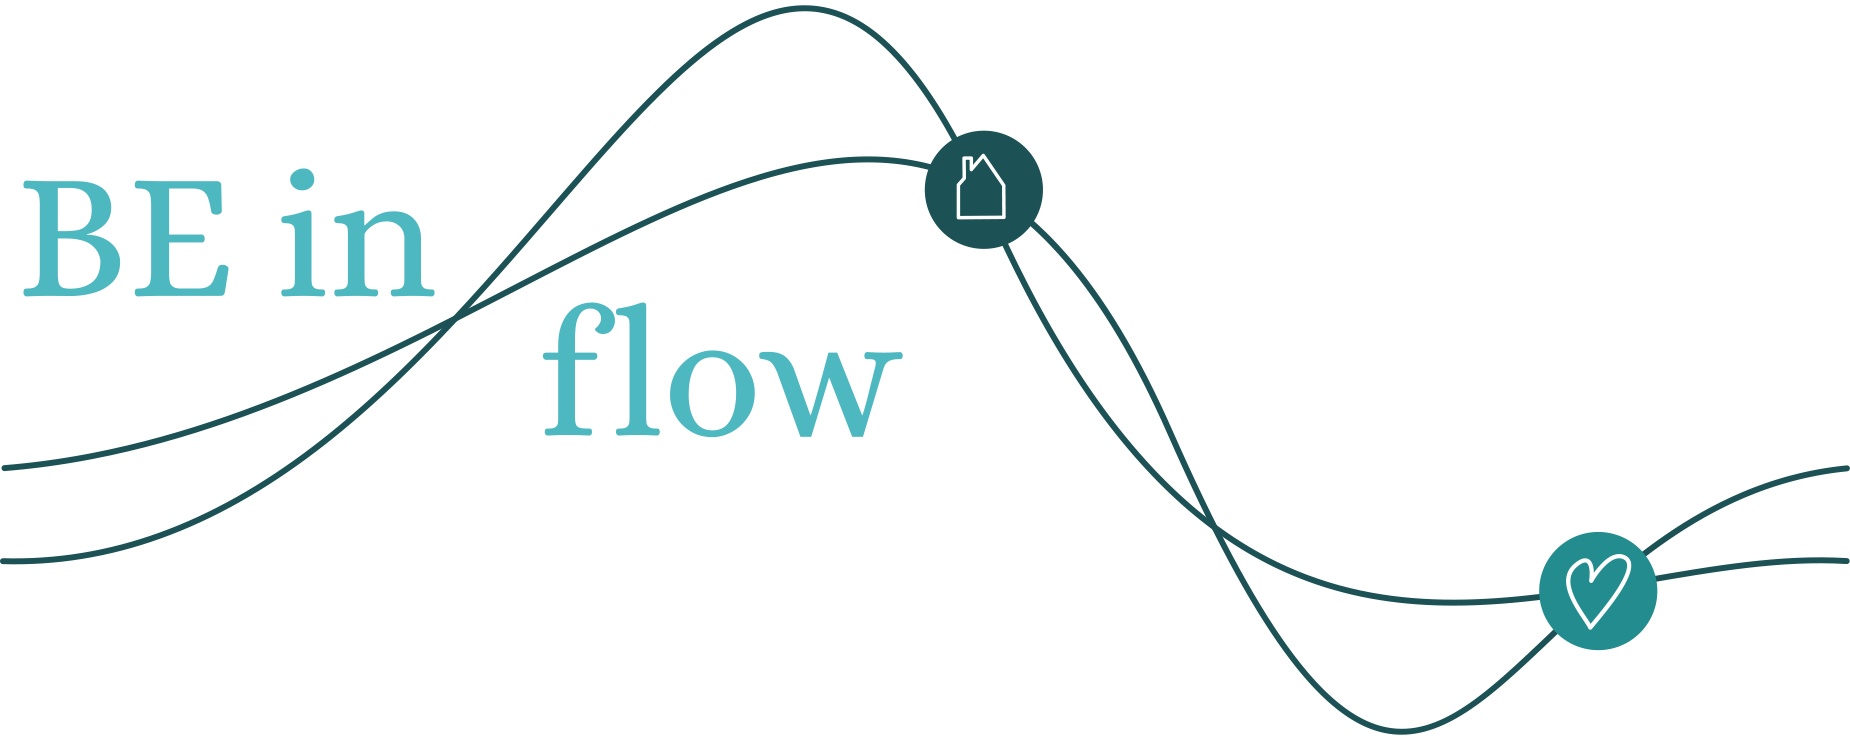 BE in flow